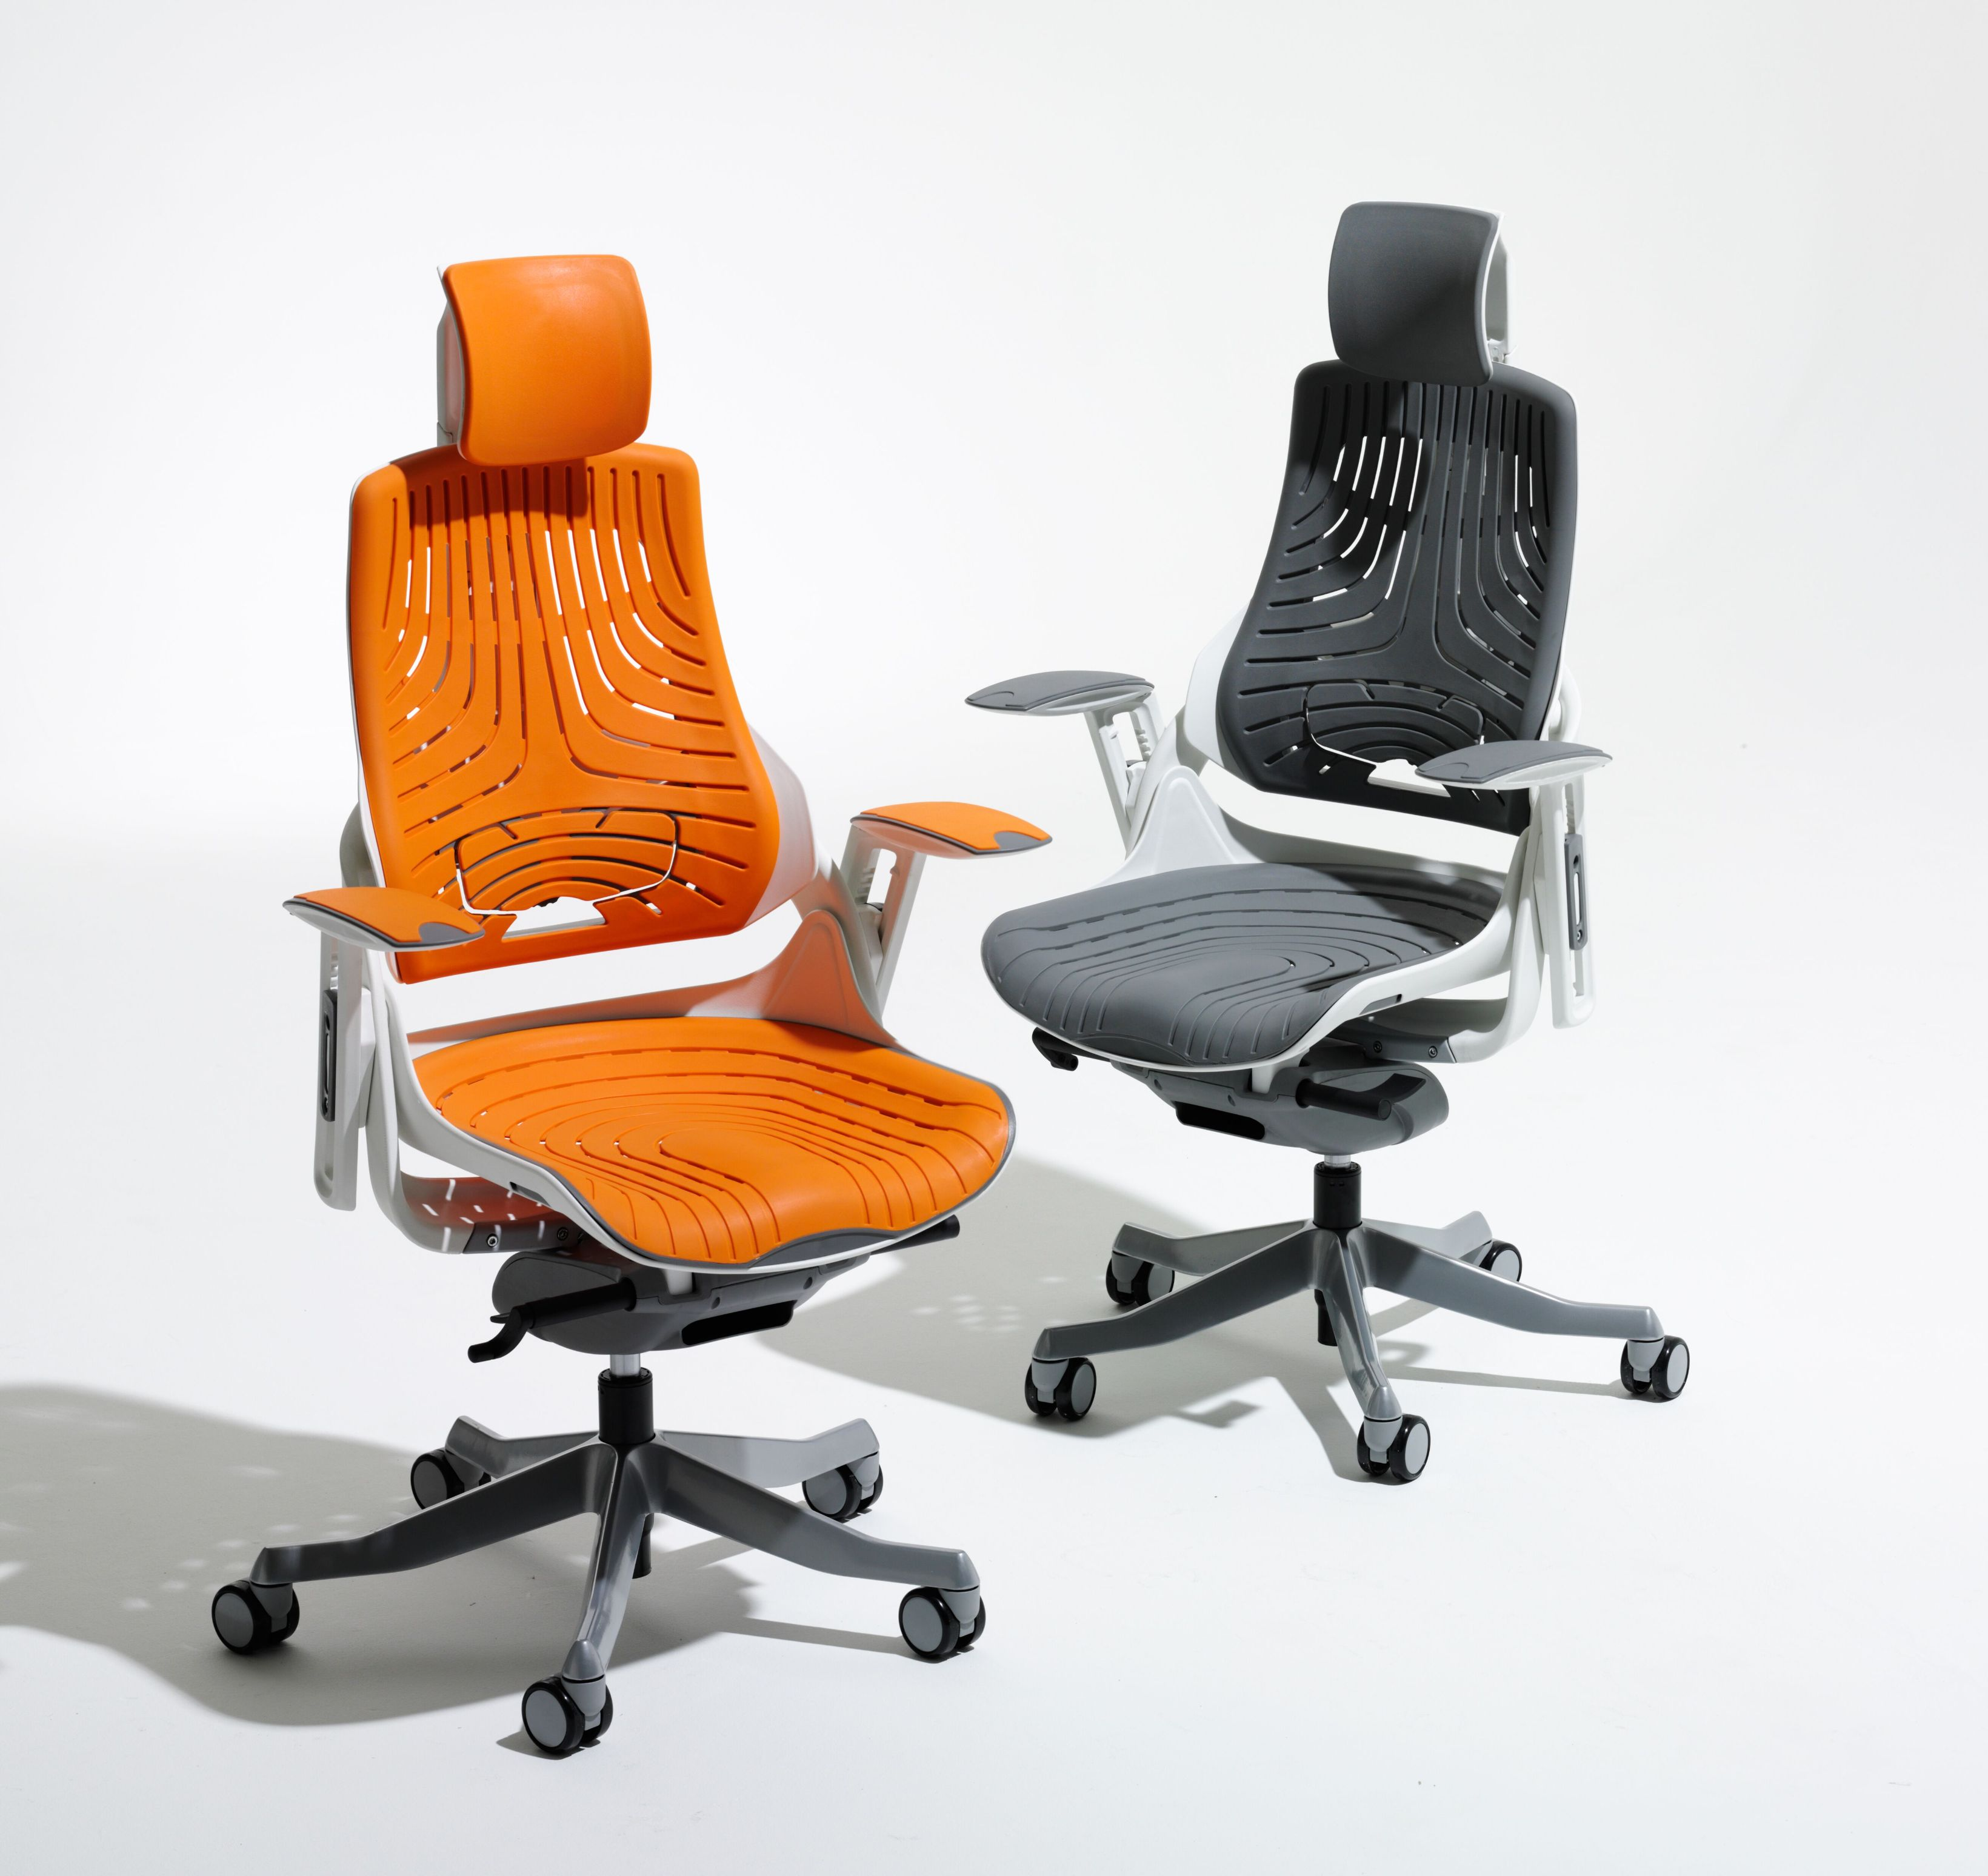 elastomer office chairs orange mesh chair office chairs uk. Black Bedroom Furniture Sets. Home Design Ideas